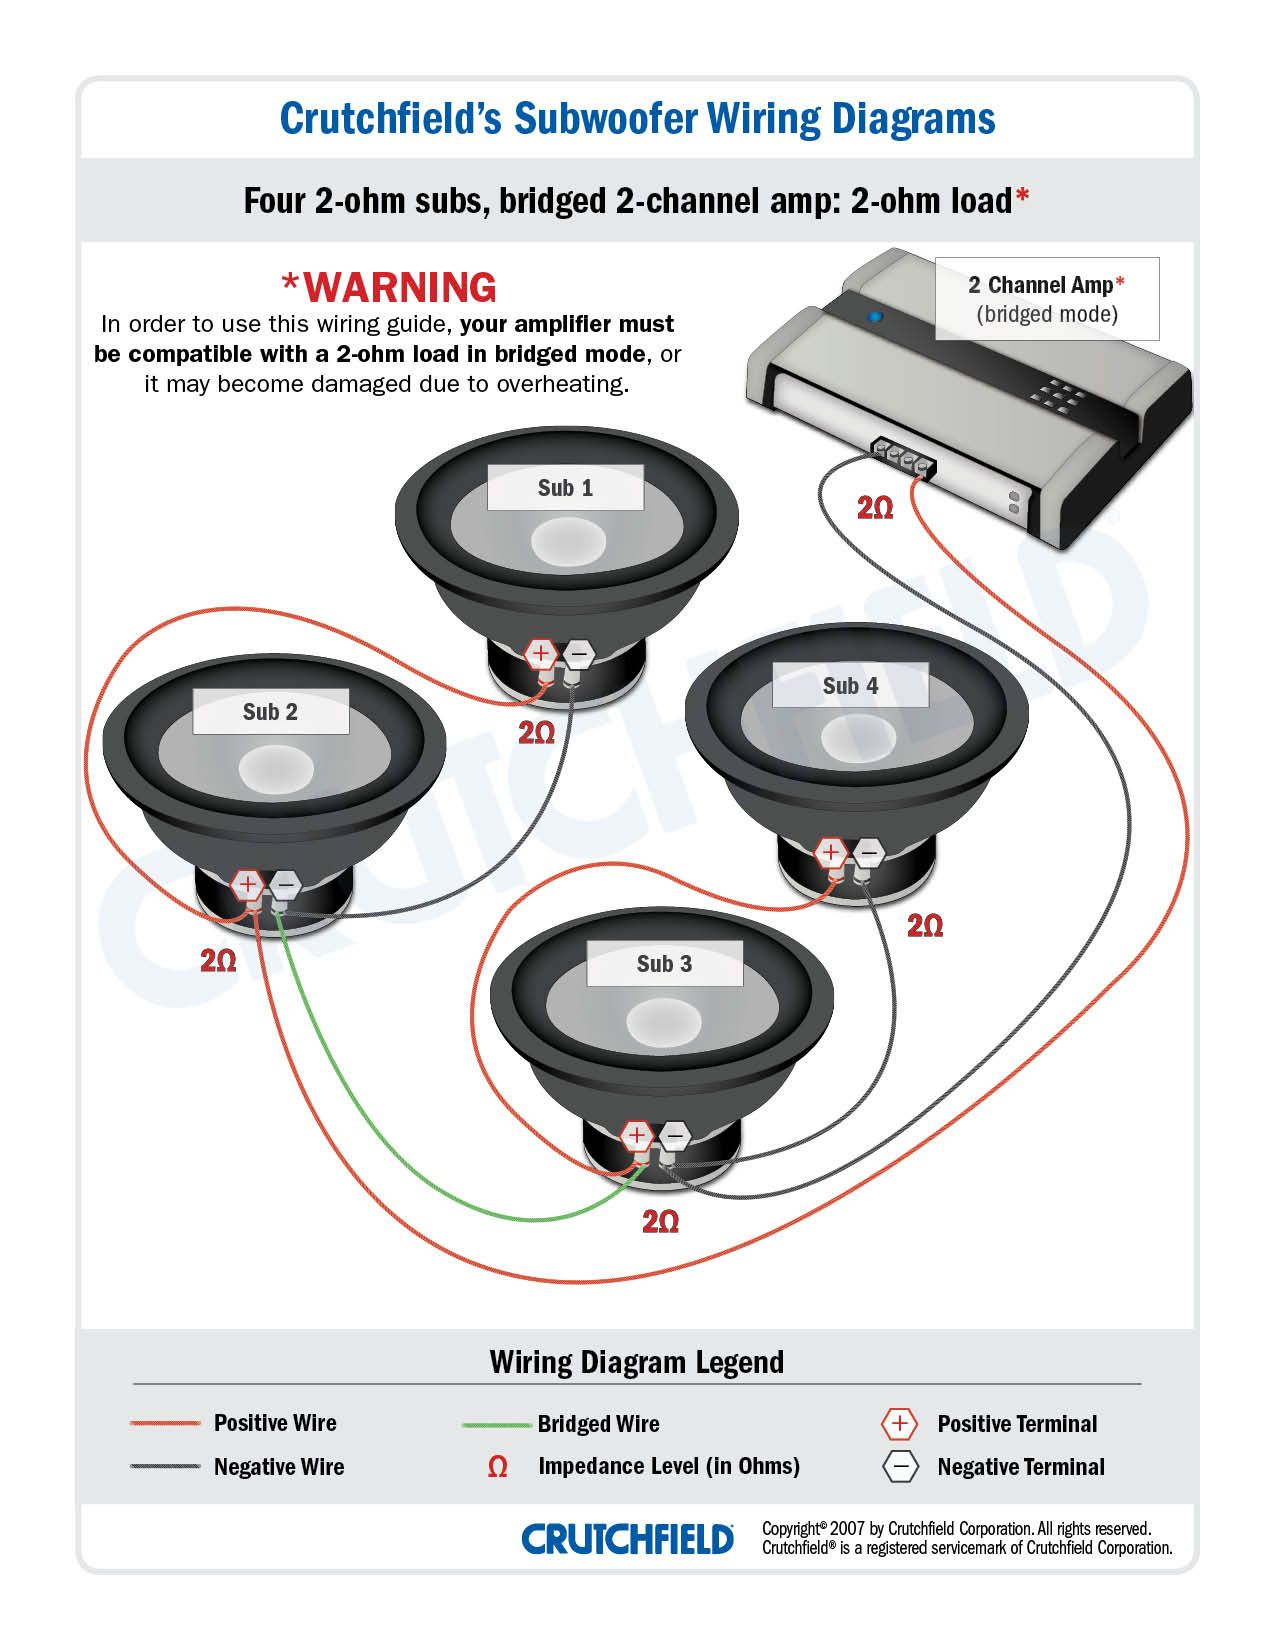 top 10 subwoofer wiring diagram free download 4 svc 2 ohm 2 ch low imp top 10 subwoofer wiring diagram free download wiring diagram [ 1275 x 1650 Pixel ]